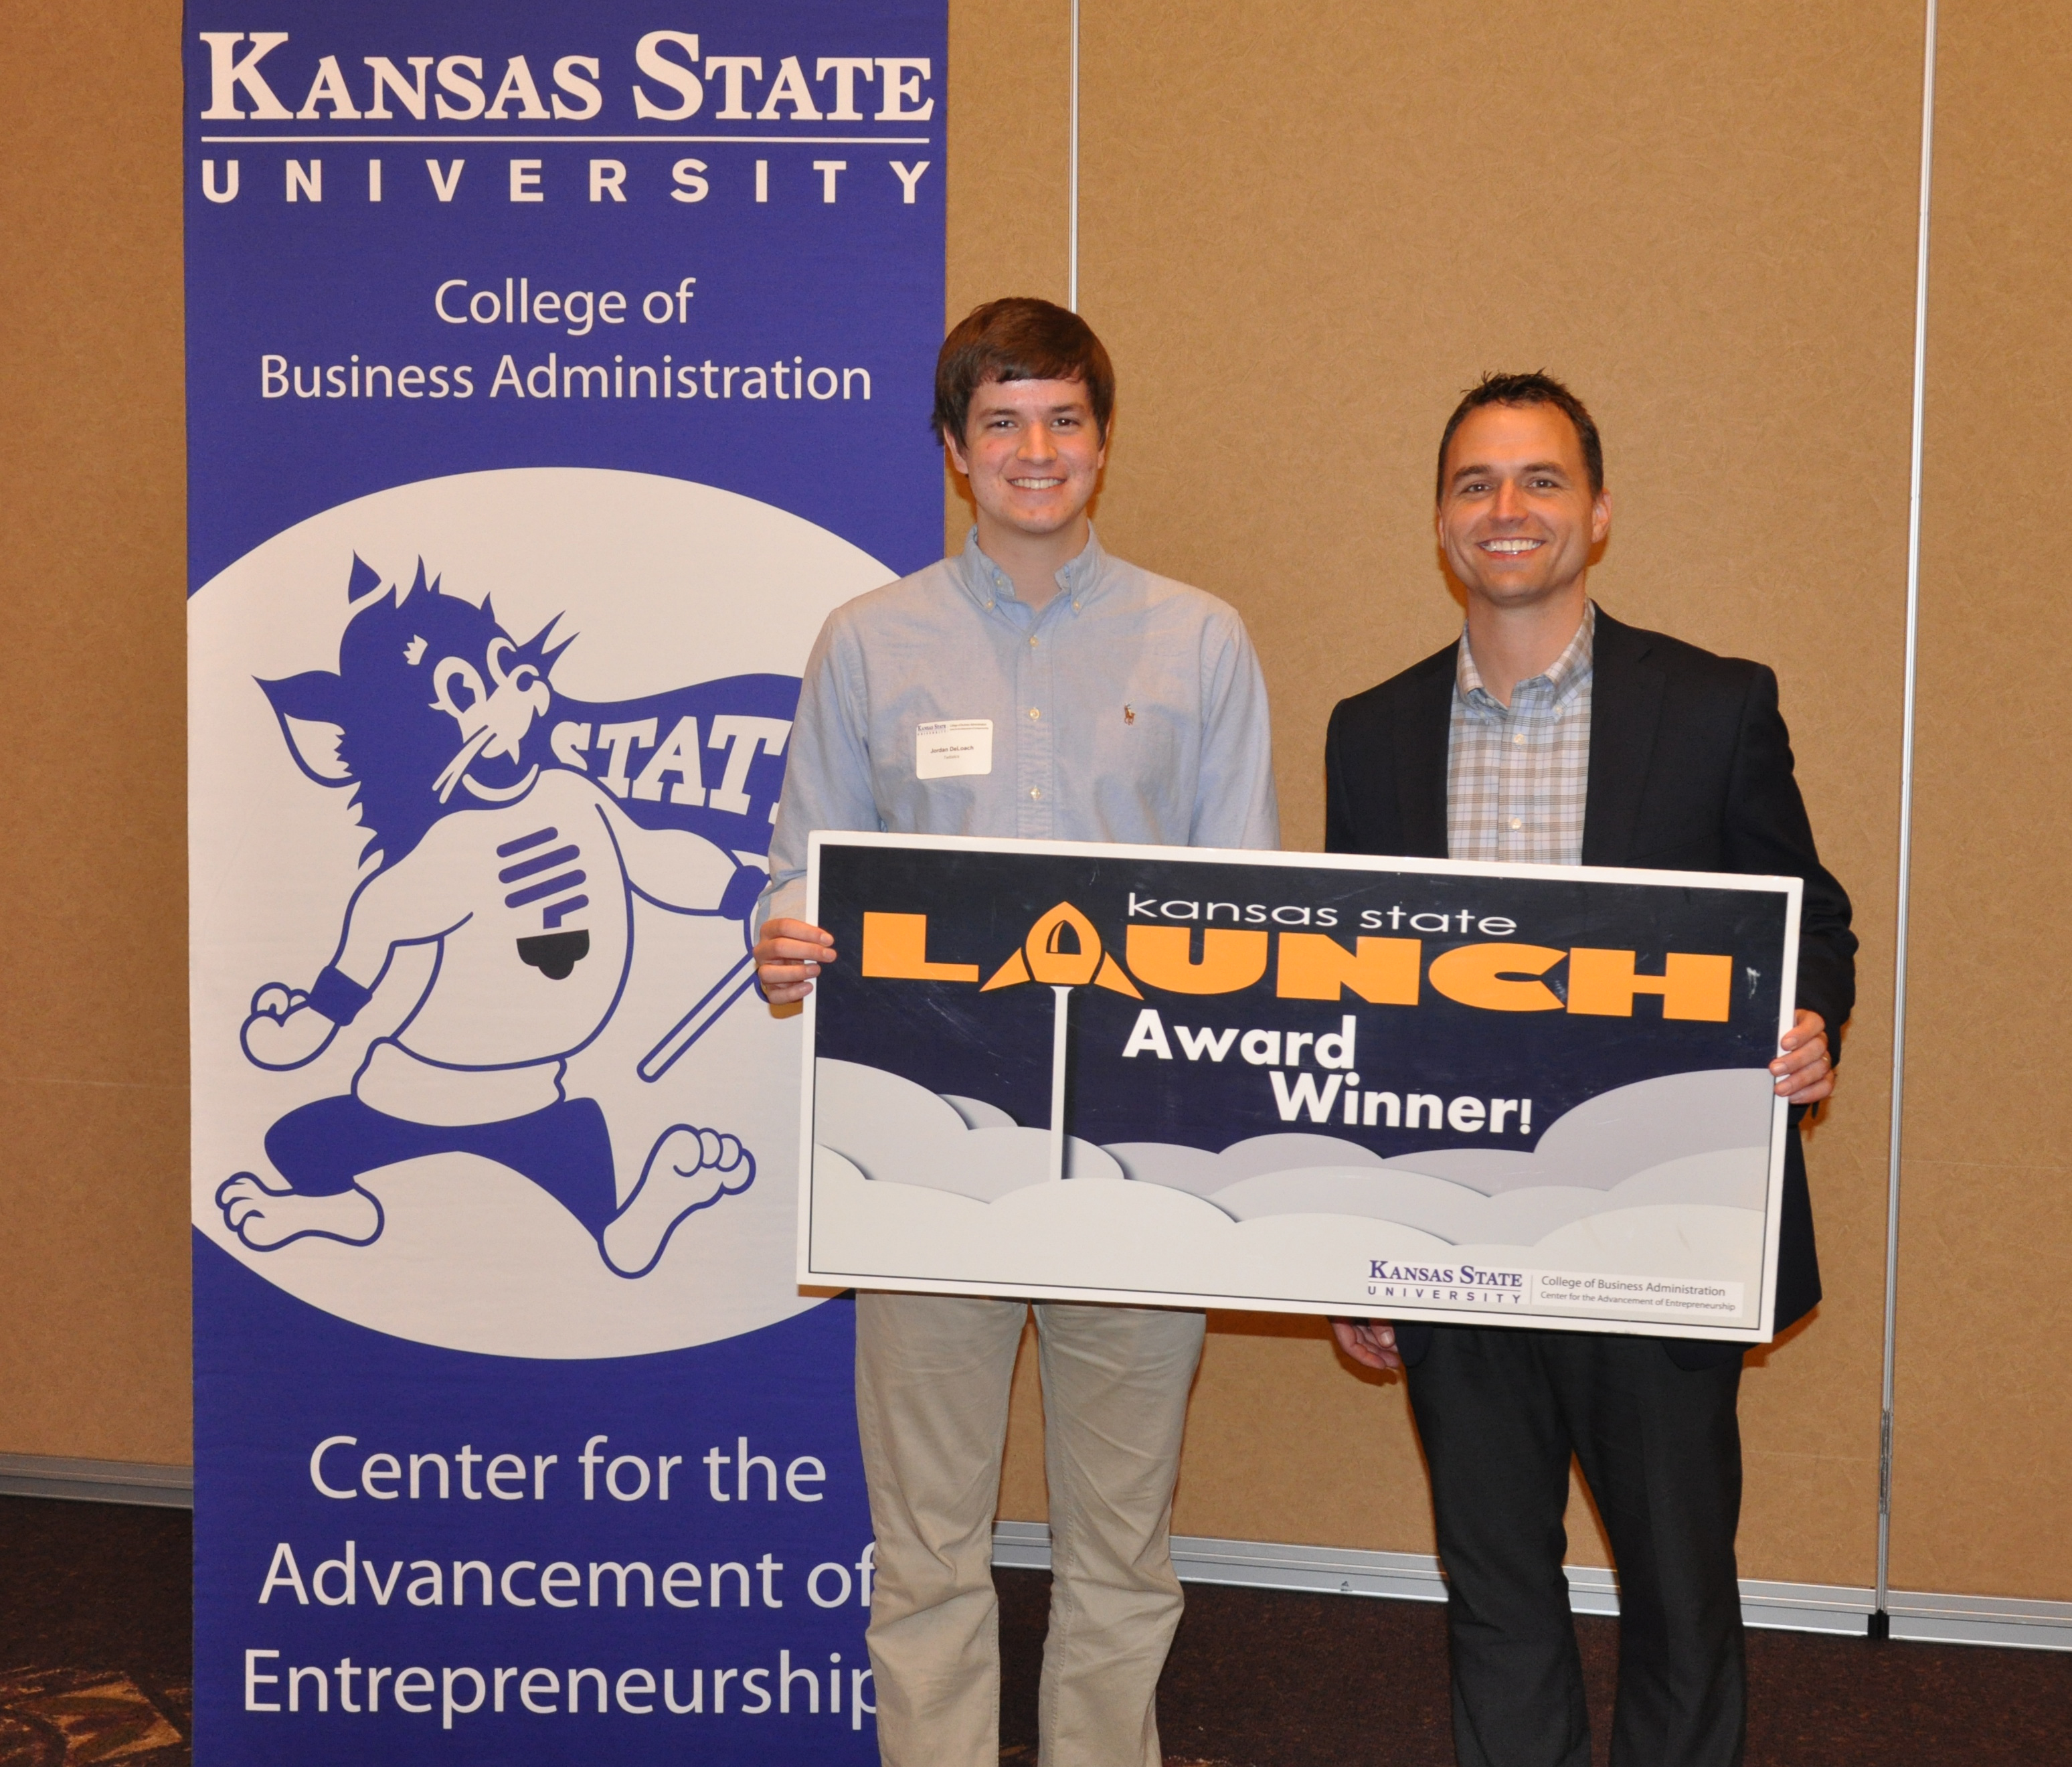 k state launch awards to student entrepreneurs kansas this photo